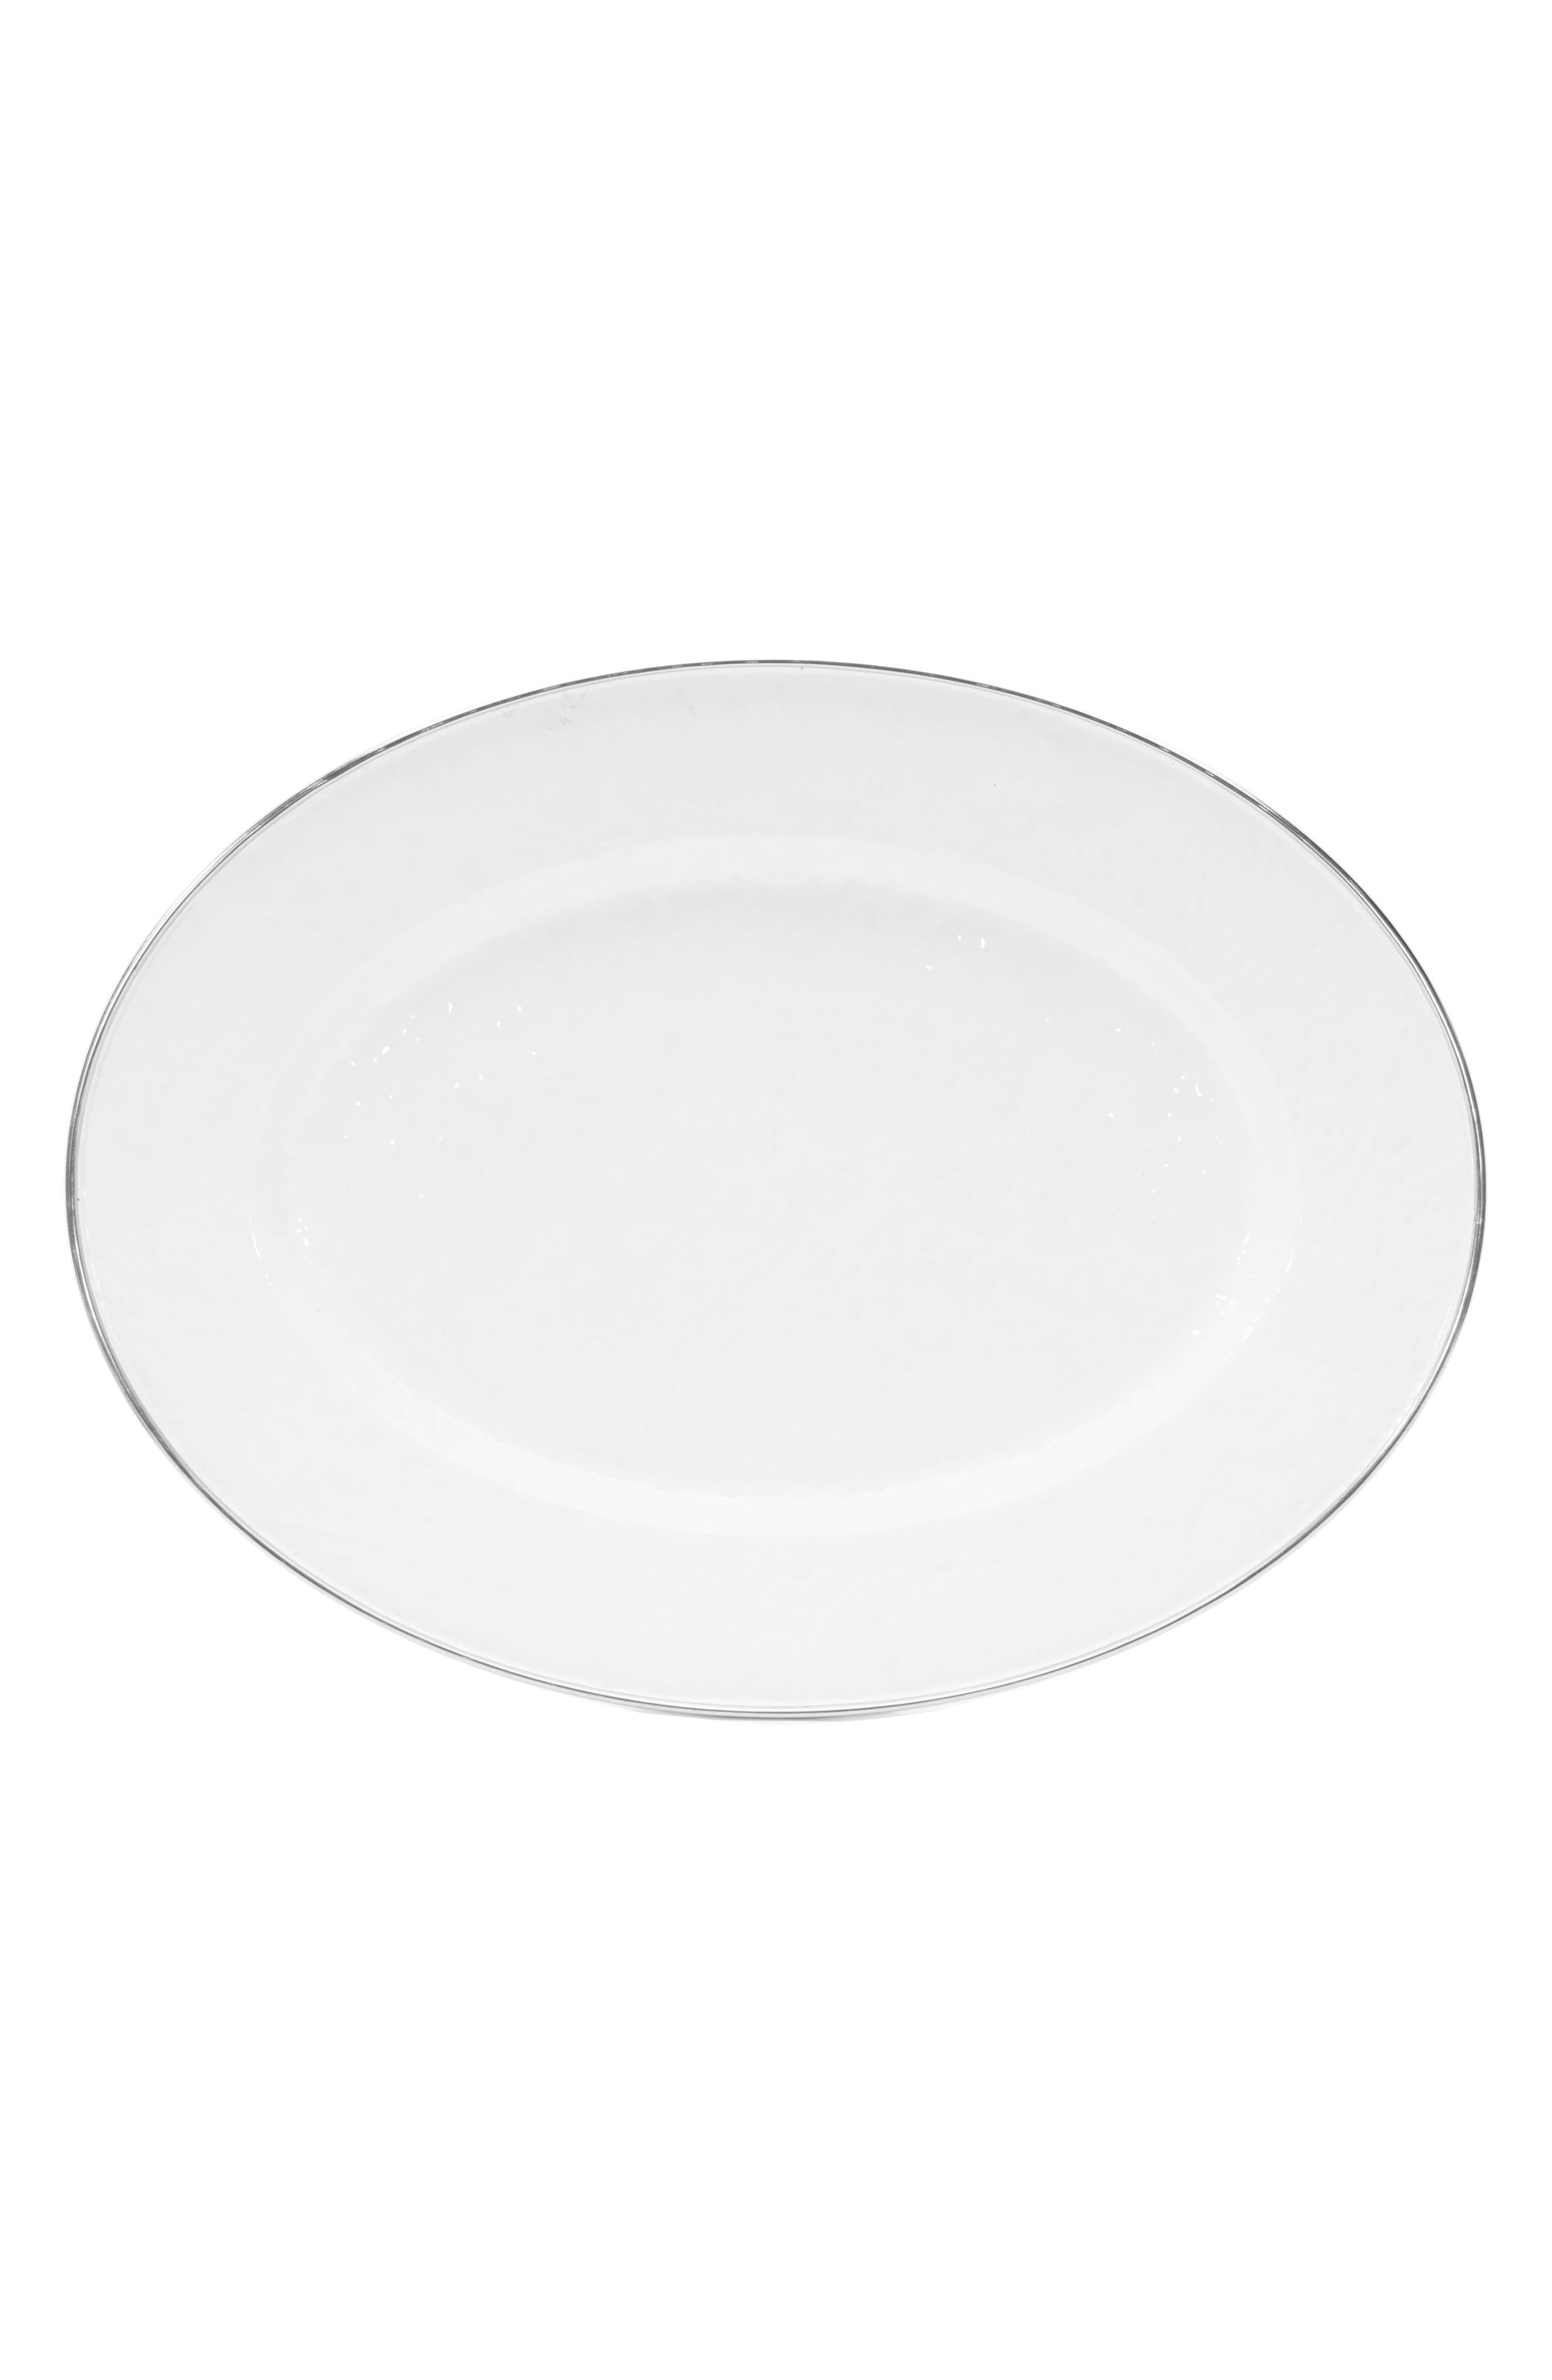 Oval Serving Platter,                         Main,                         color, SOLID WHITE